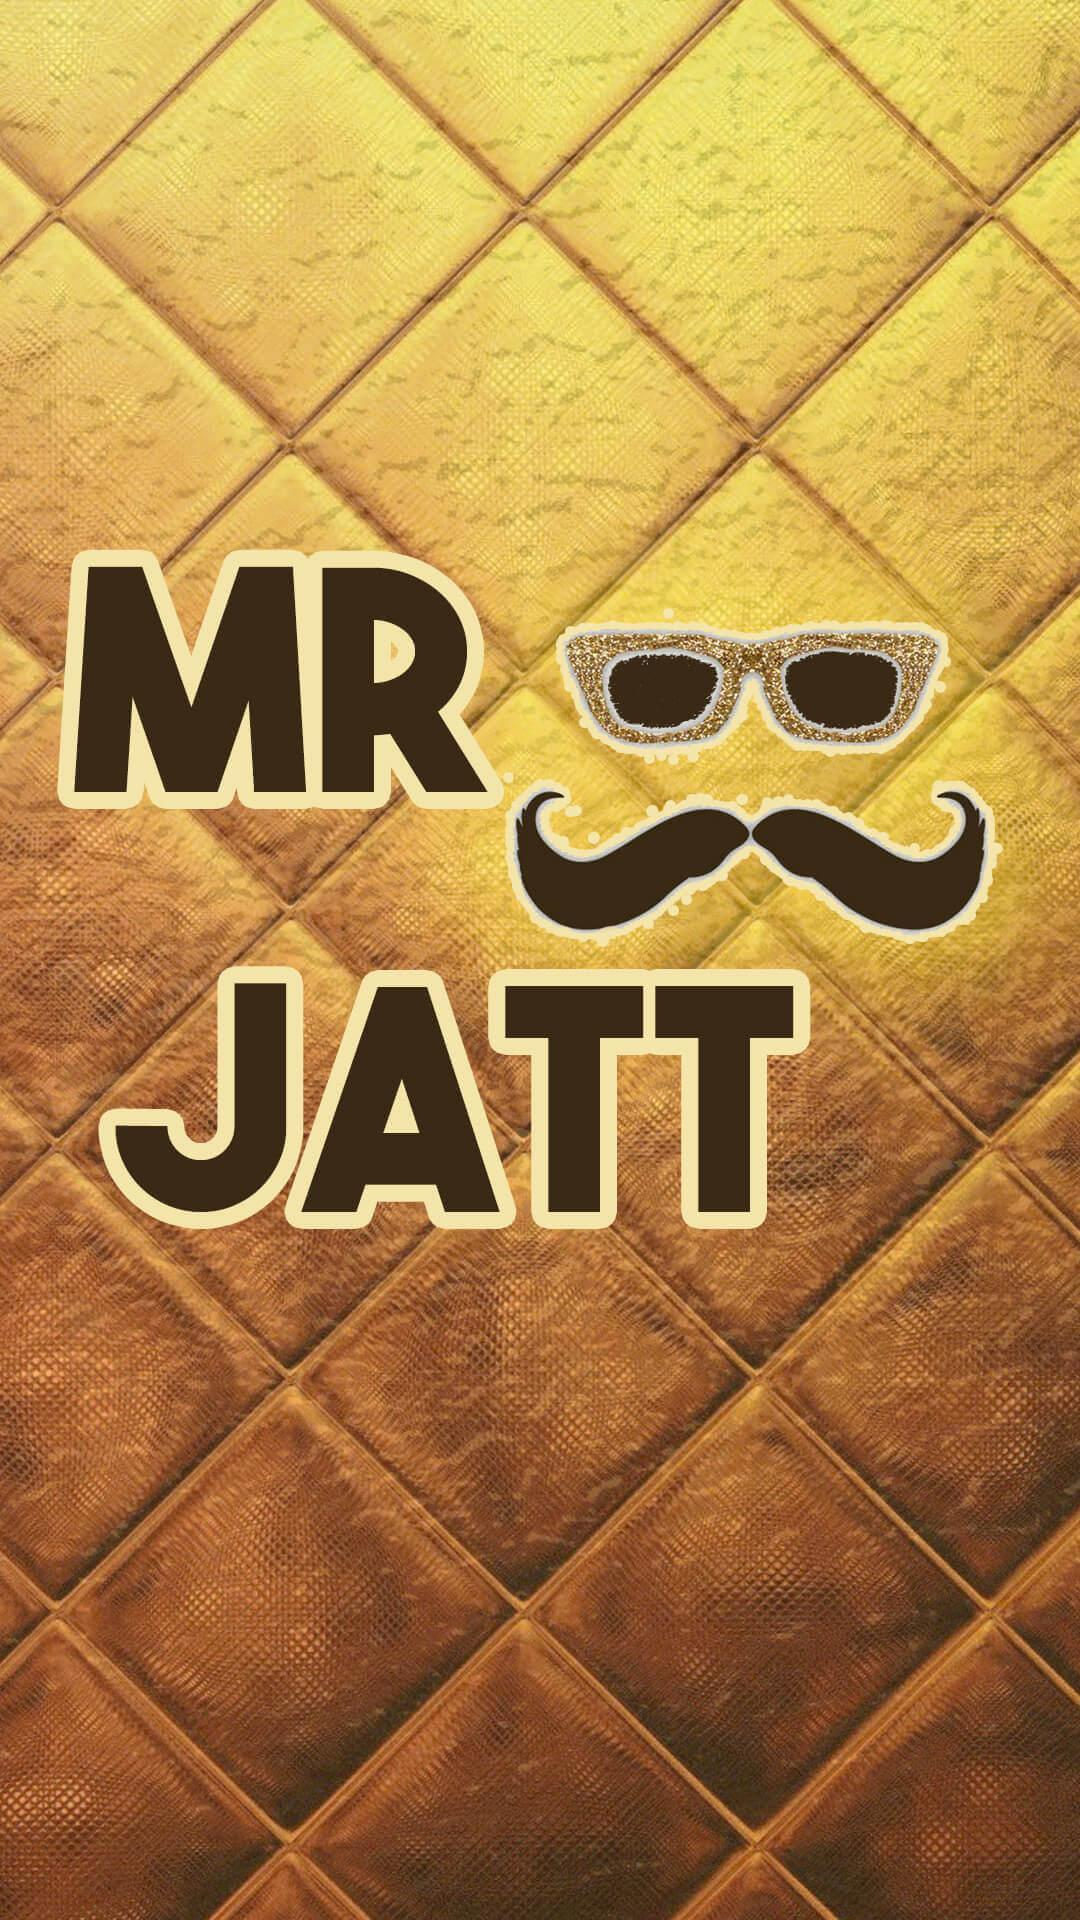 Mr Jatt Punjabi Songs for Android - APK Download